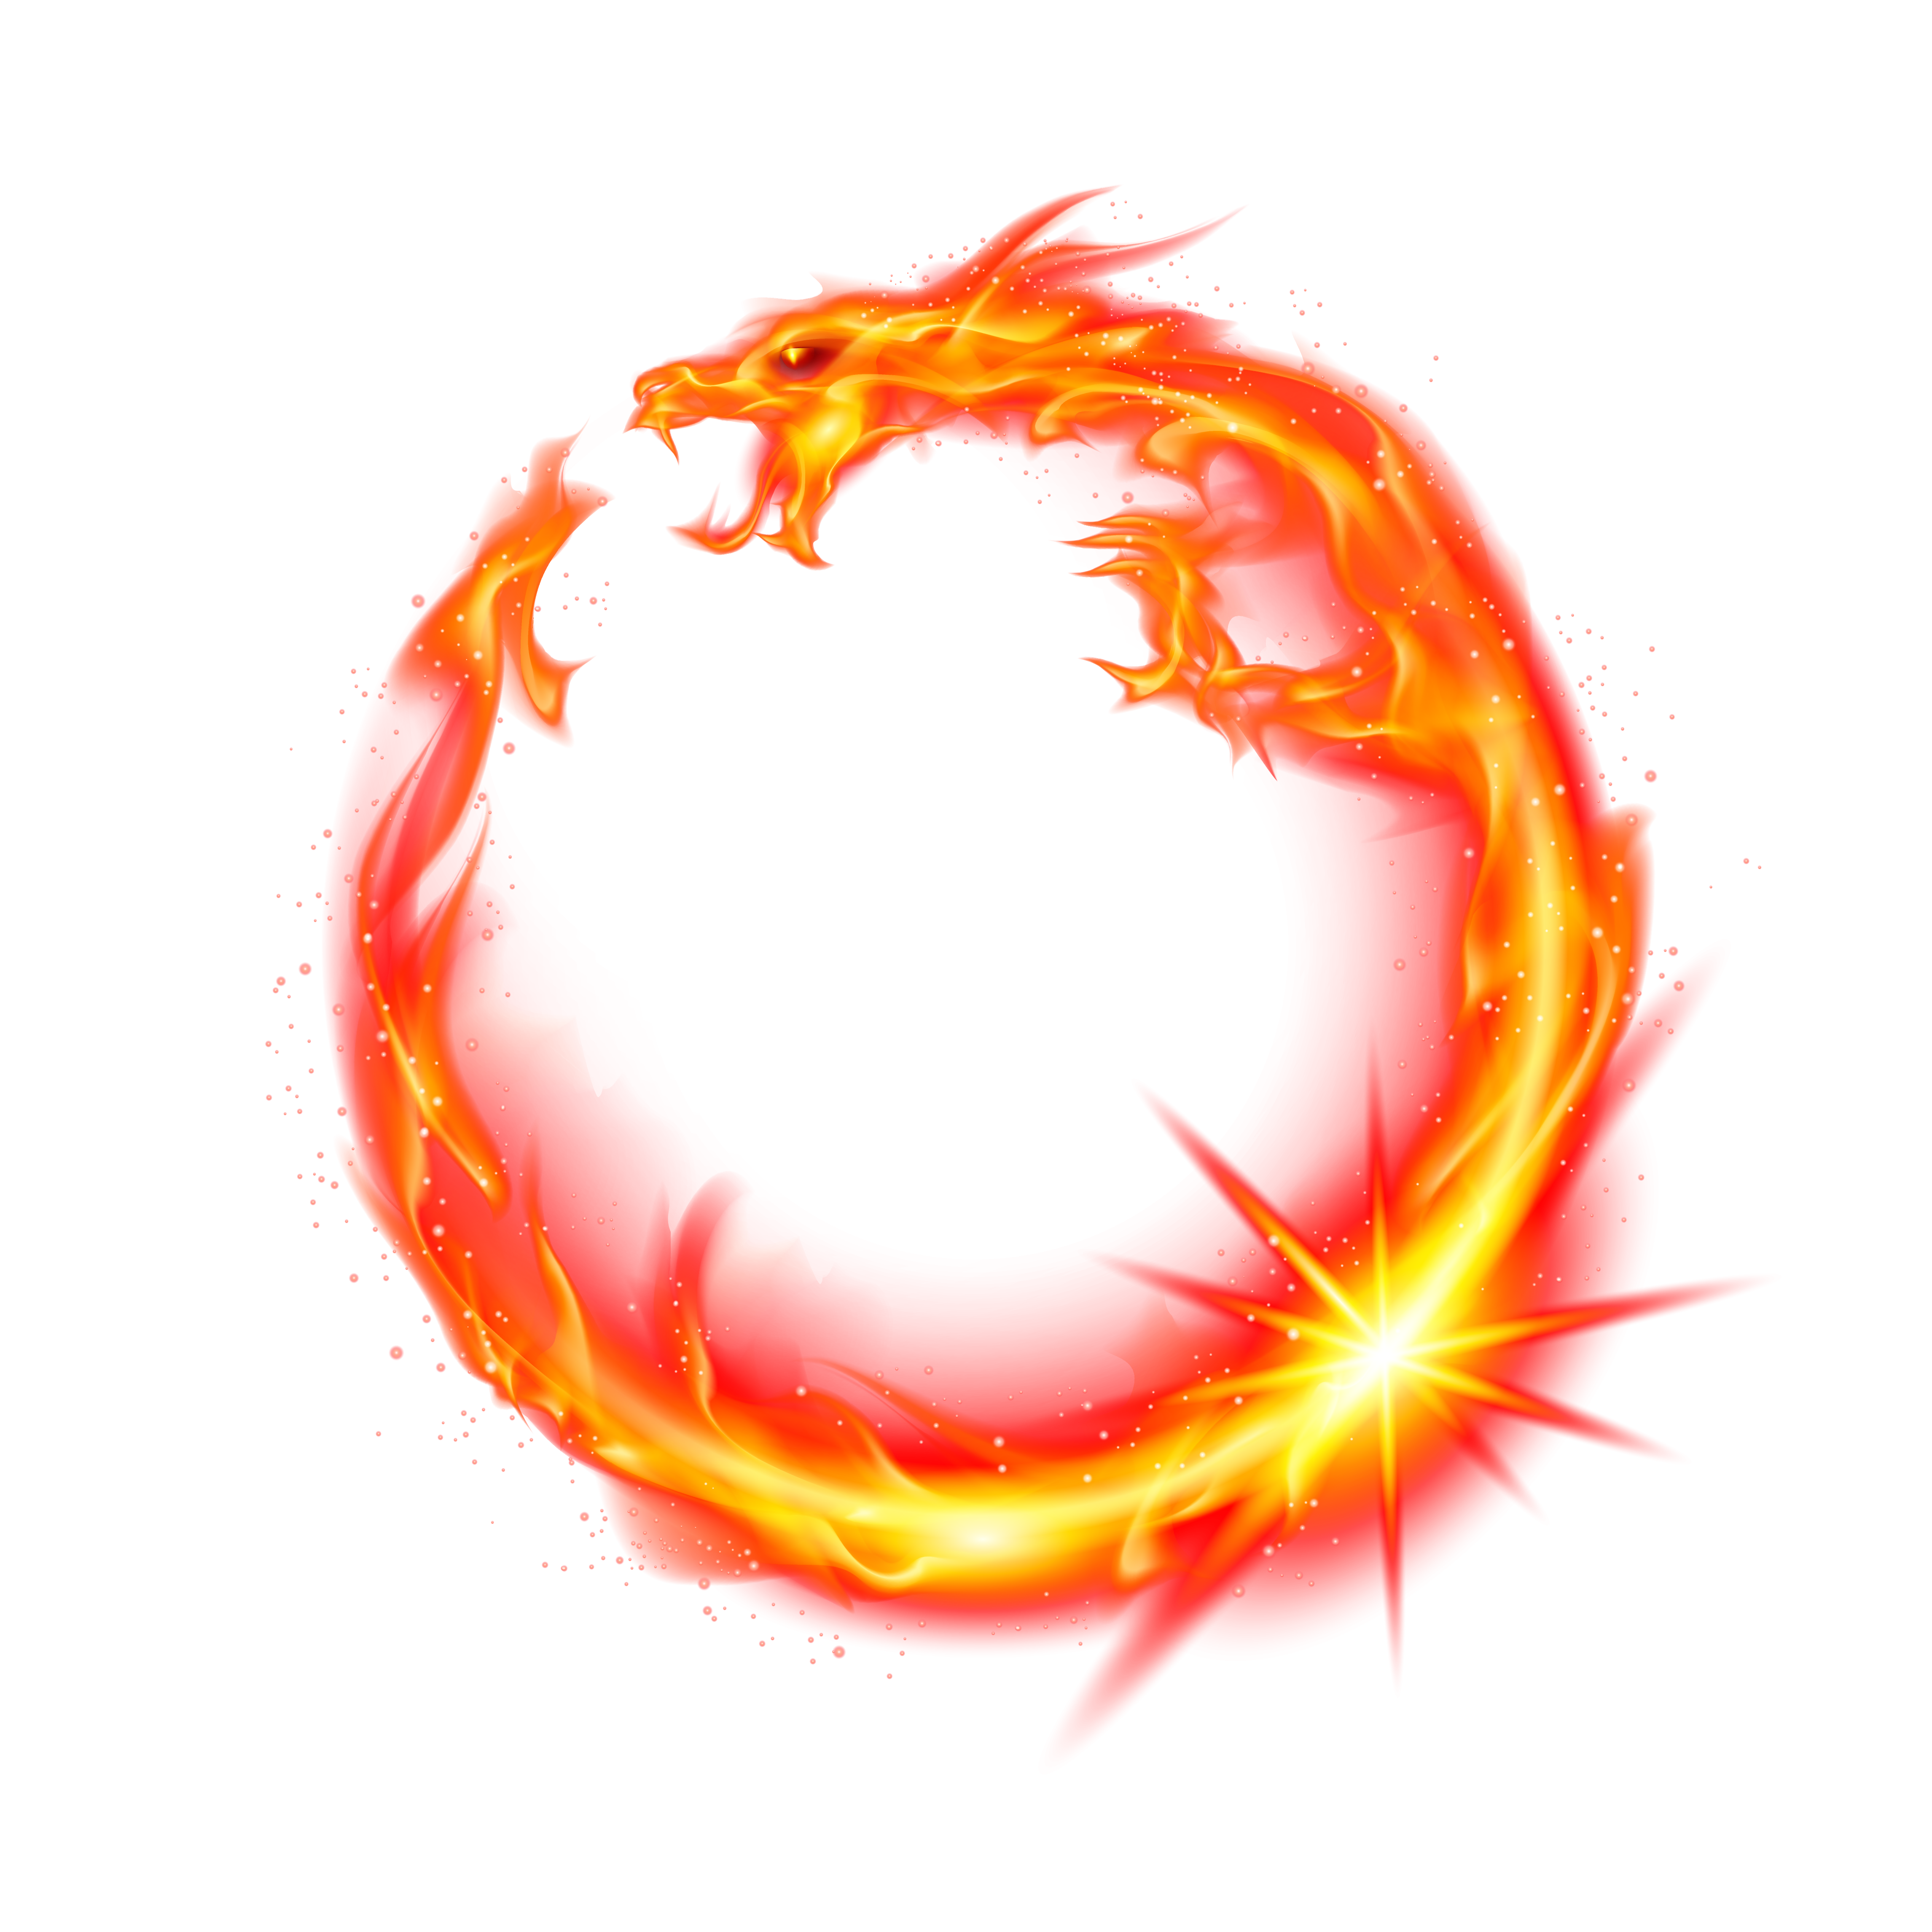 Red fire png. Flame dragon transprent free